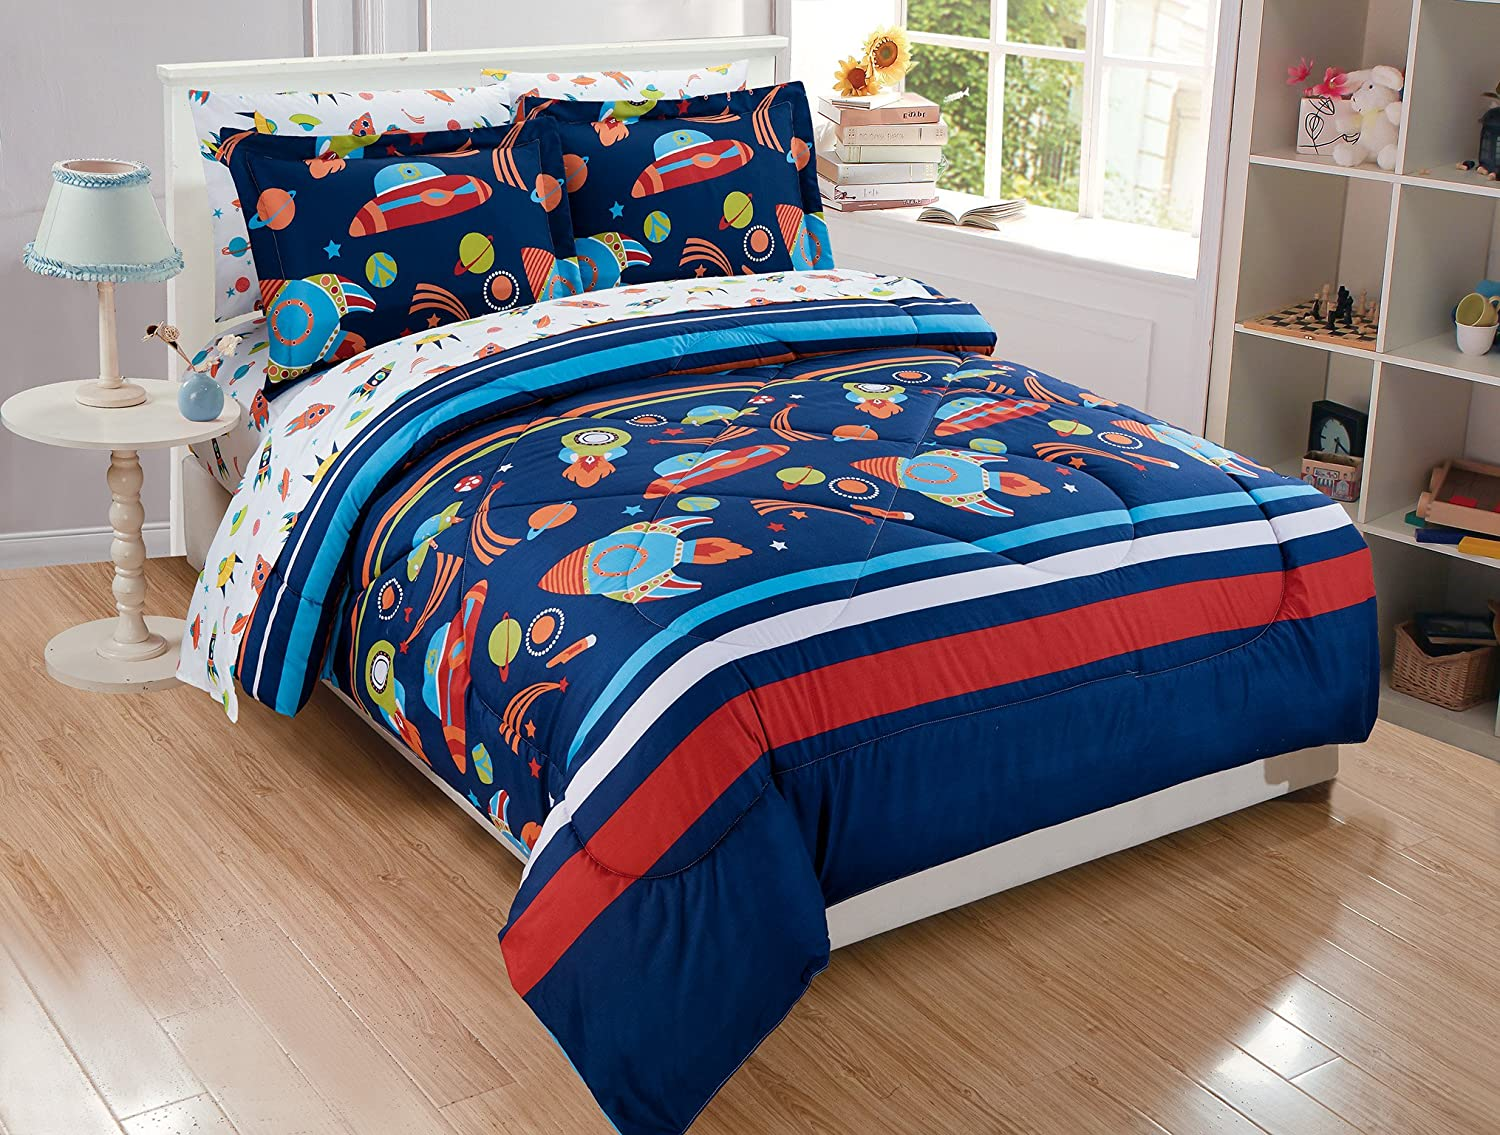 Fancy Linen 7pc Full Comforter Set With Matching Sheets Solar System Universe Galaxy Stars Rocket Spaceship Navy Blue Orange White Red